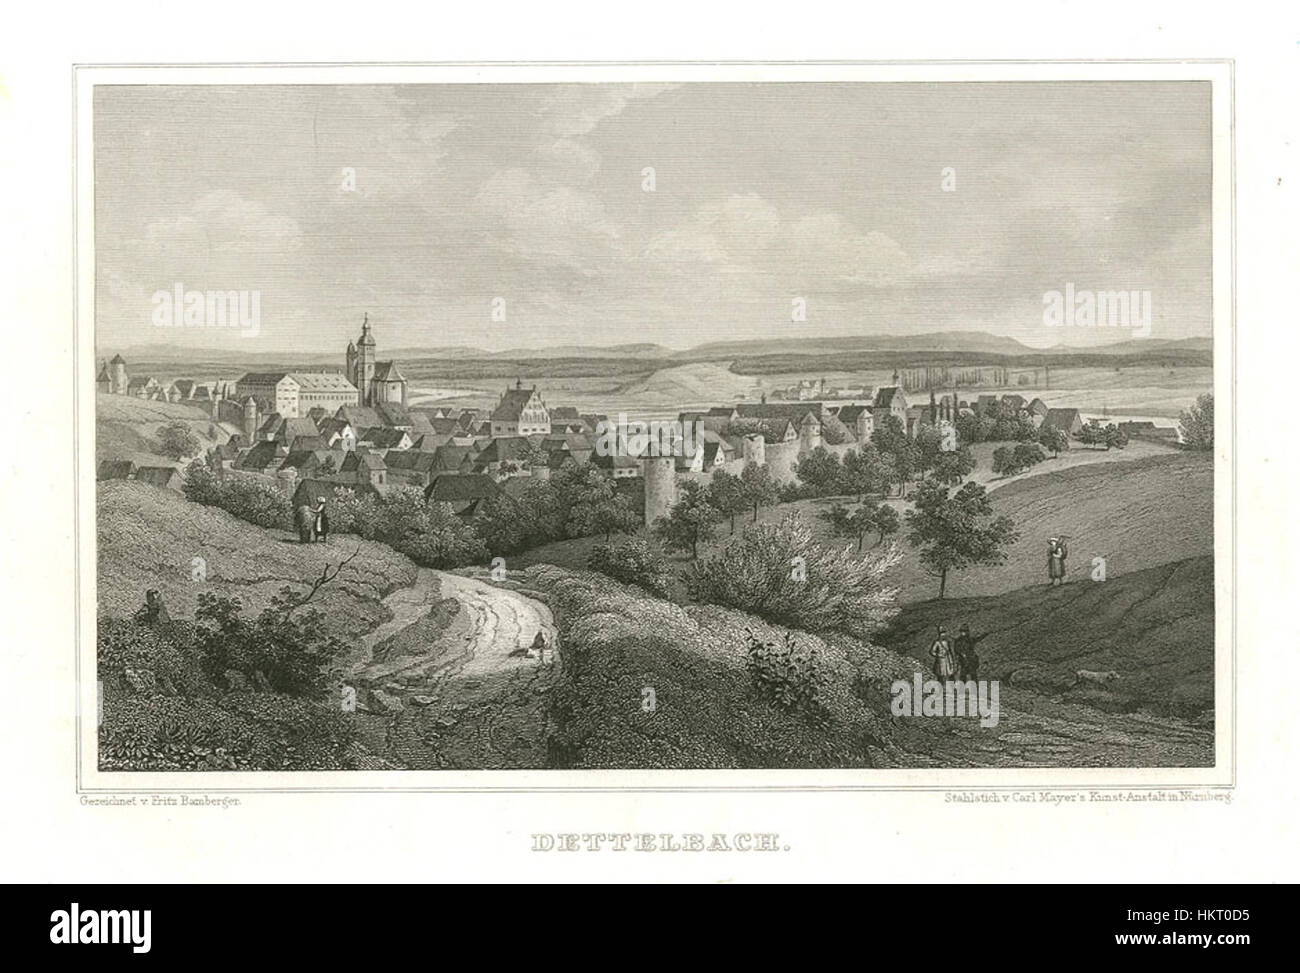 Dettelbach Stahlstich 1847 - Stock Image